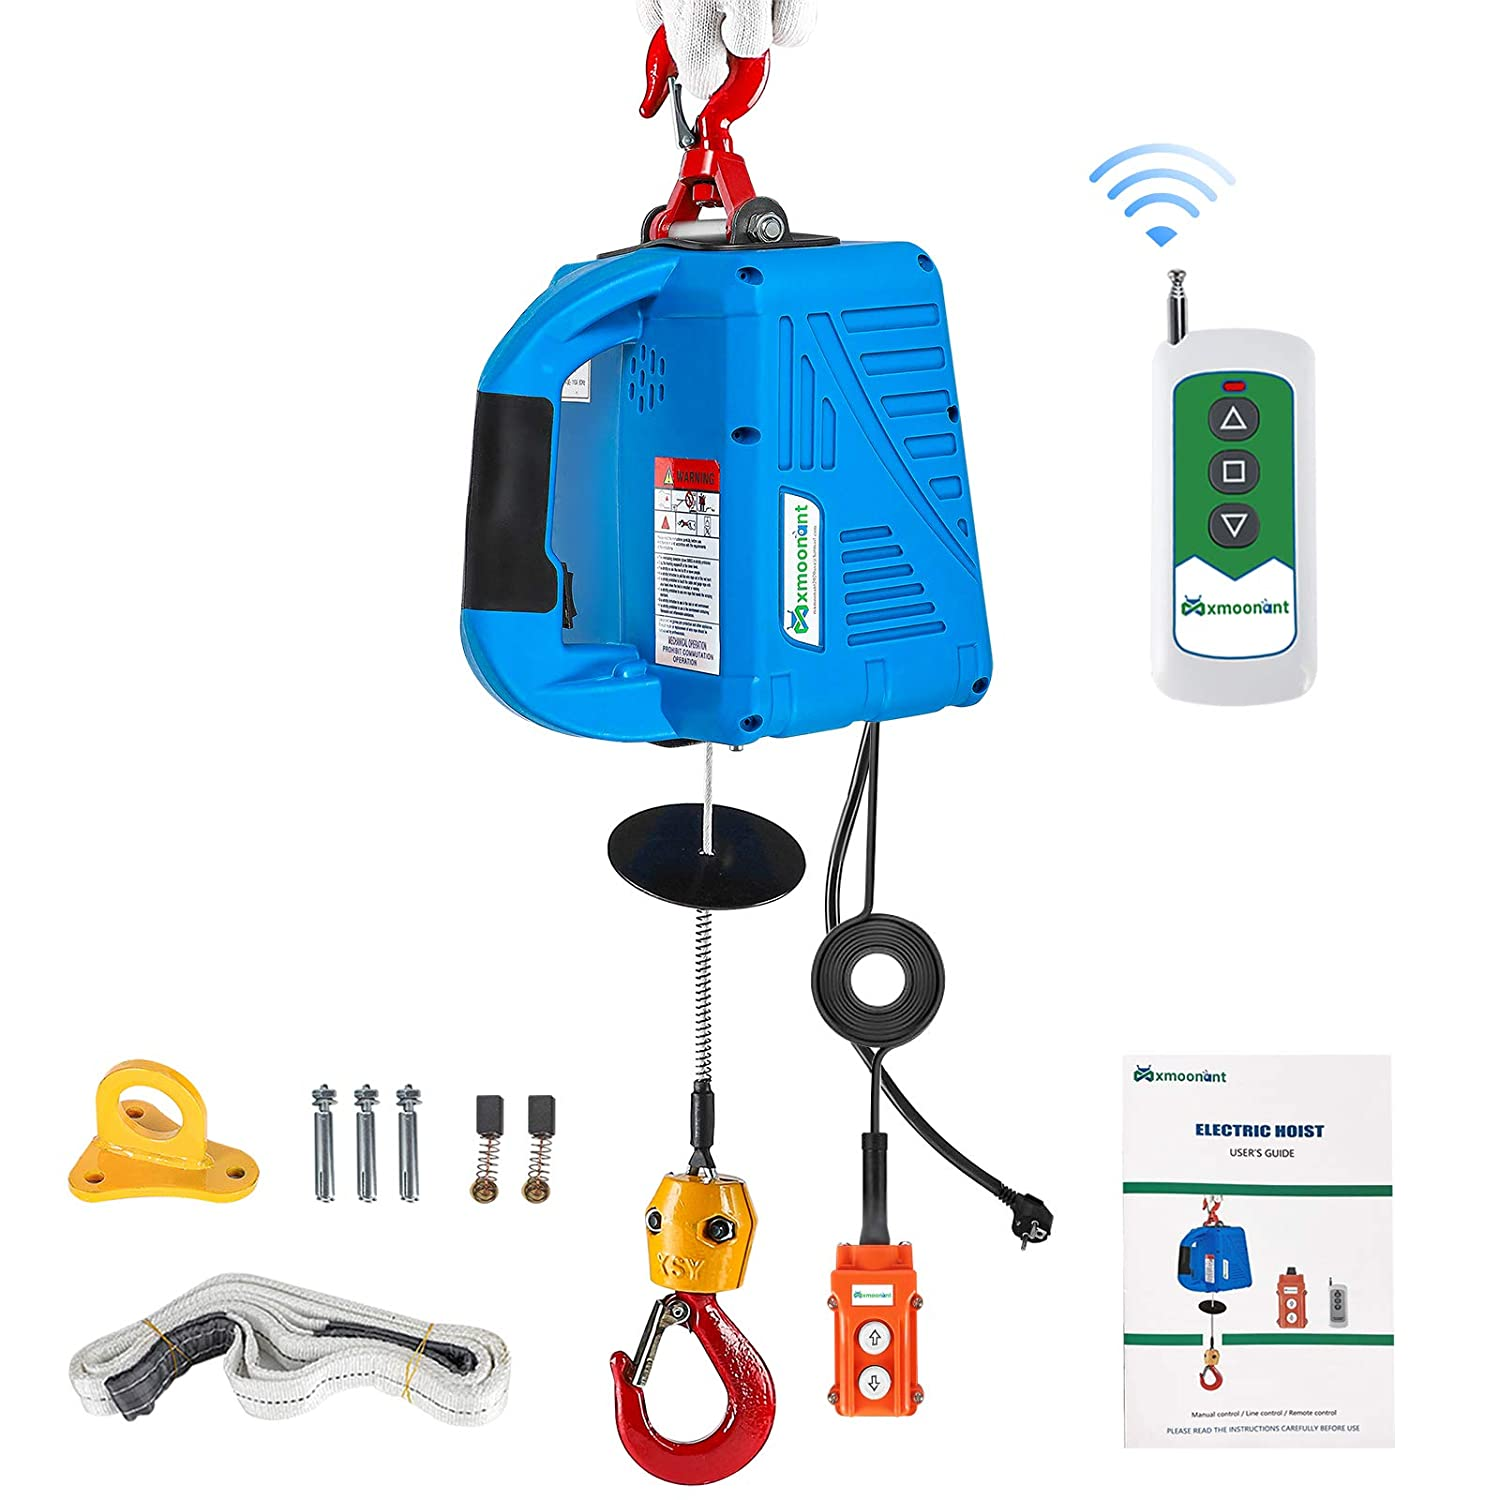 Mxmoonant 1/2 ton Electric Hoist with Remote 110 Volt Electric Winch Portable 25ft 1100lb Three Control Methods